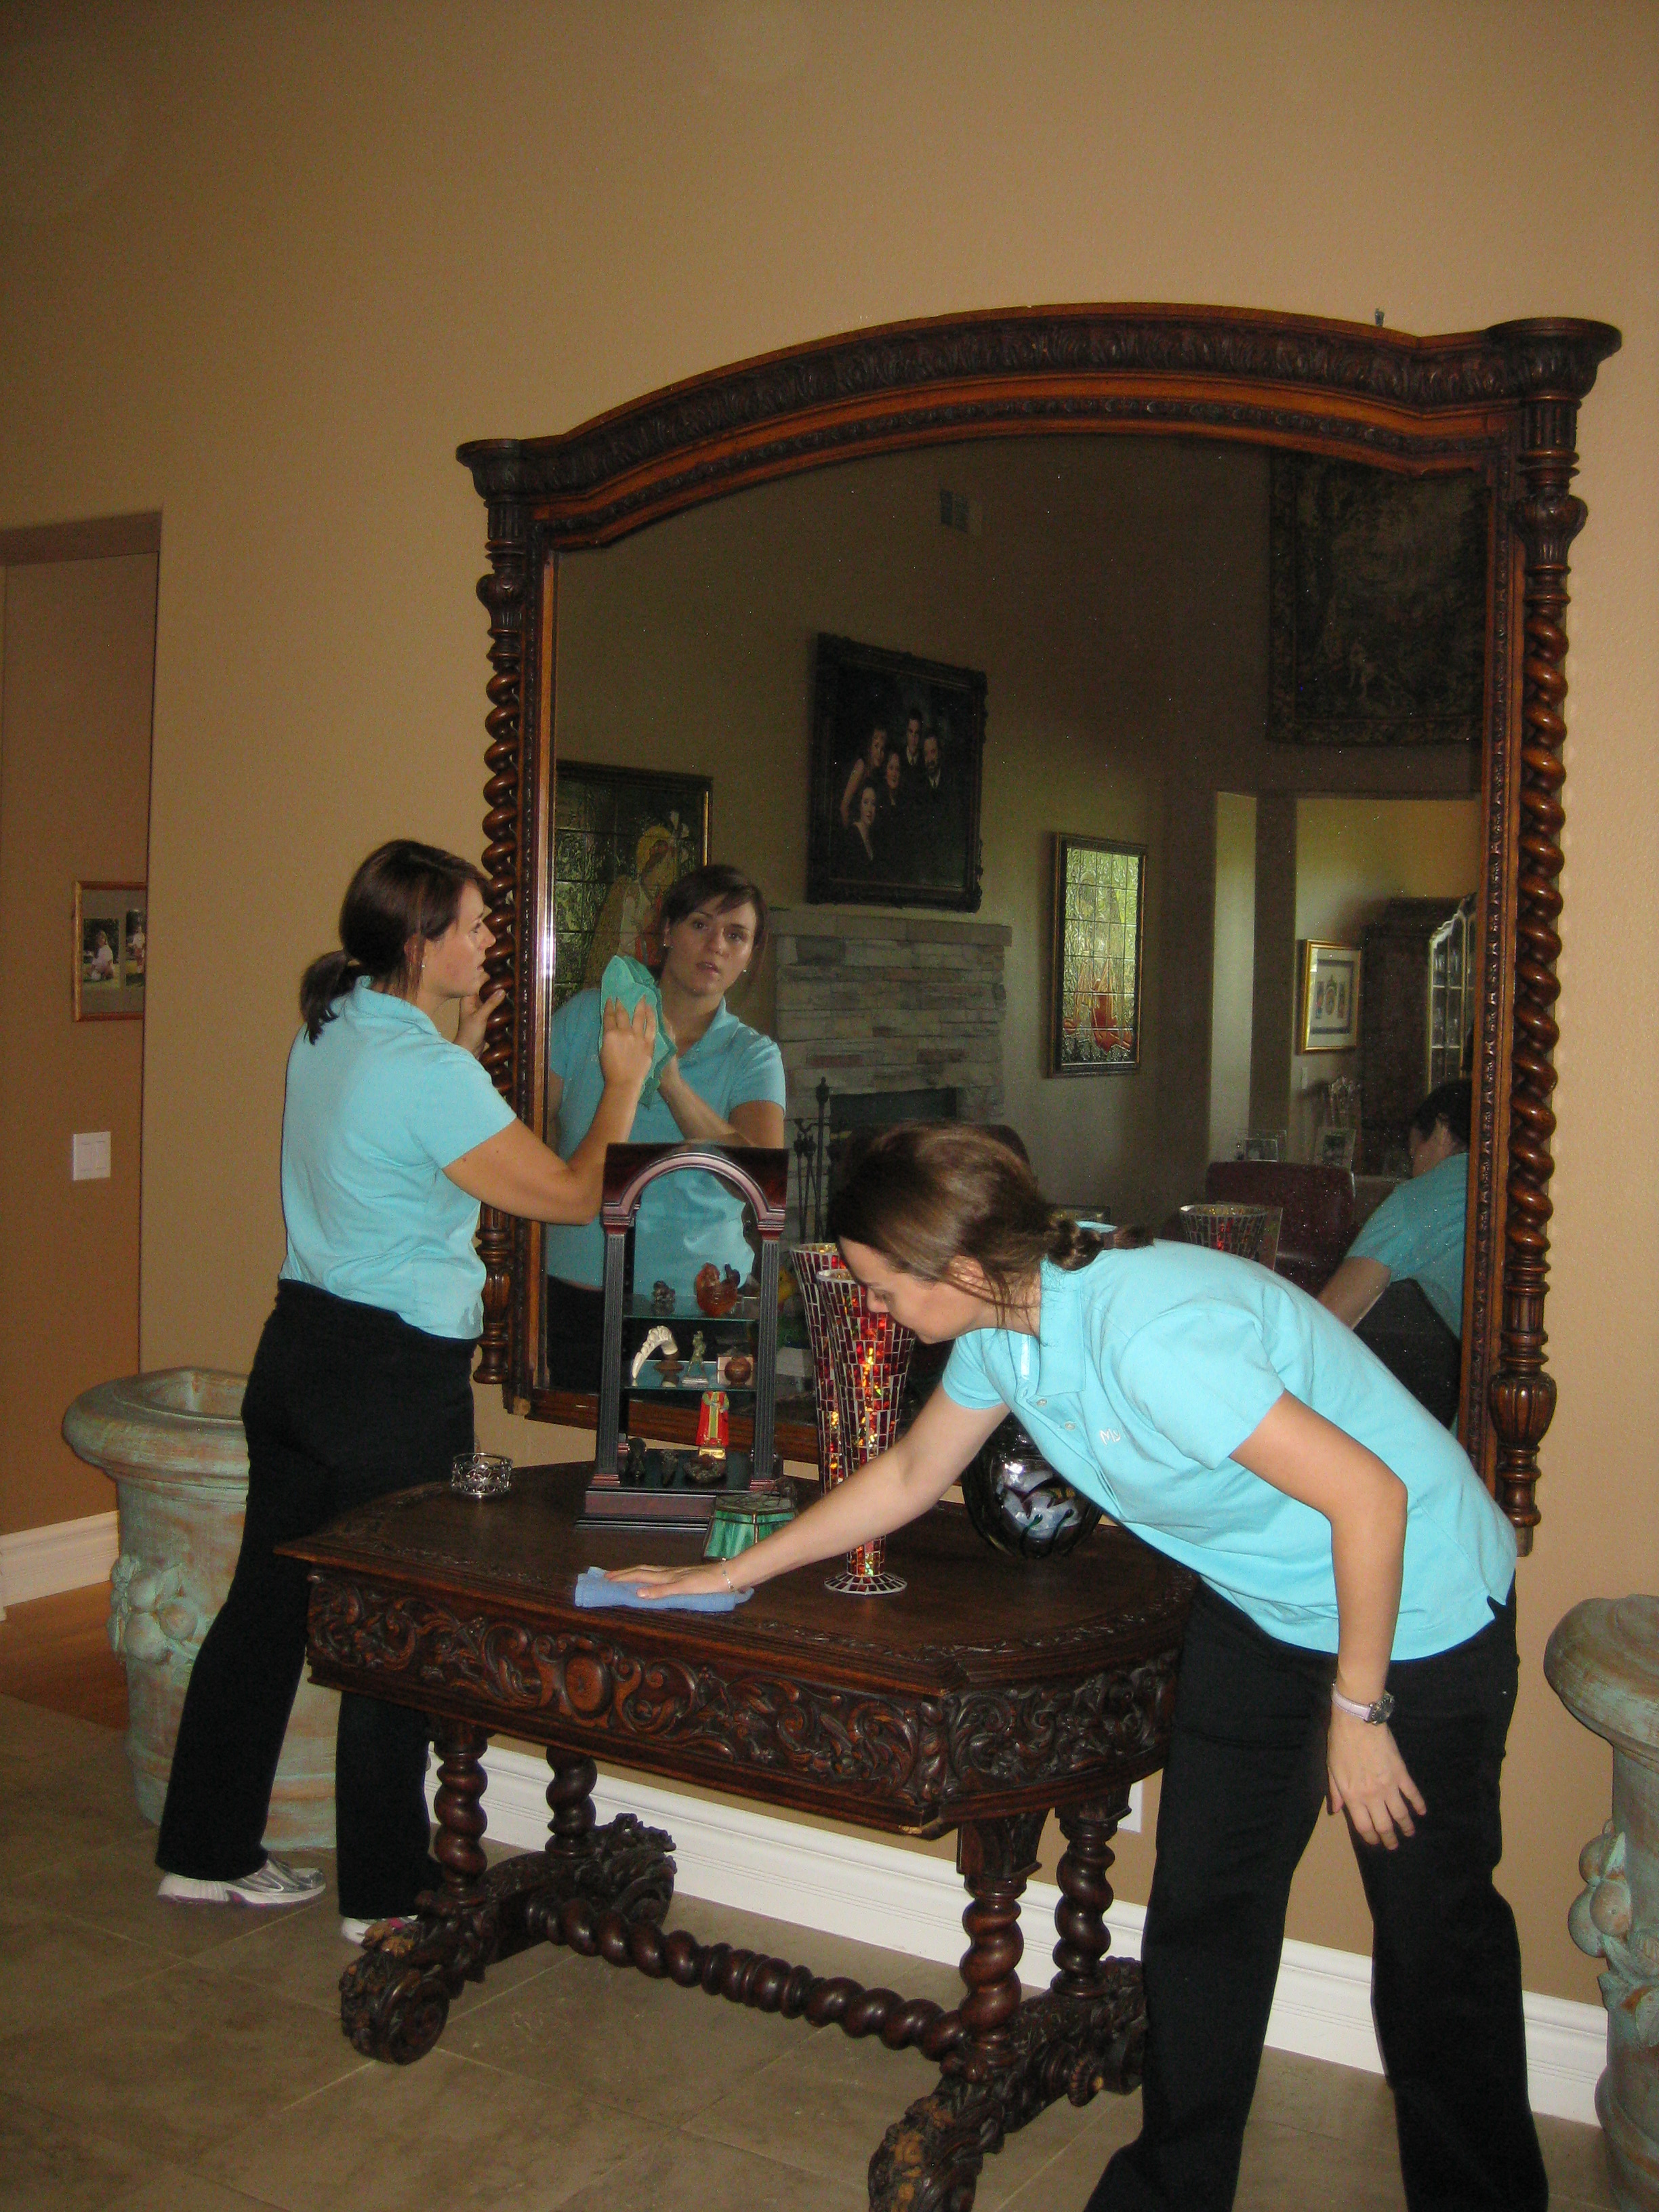 My Maids House Cleaning Service image 9